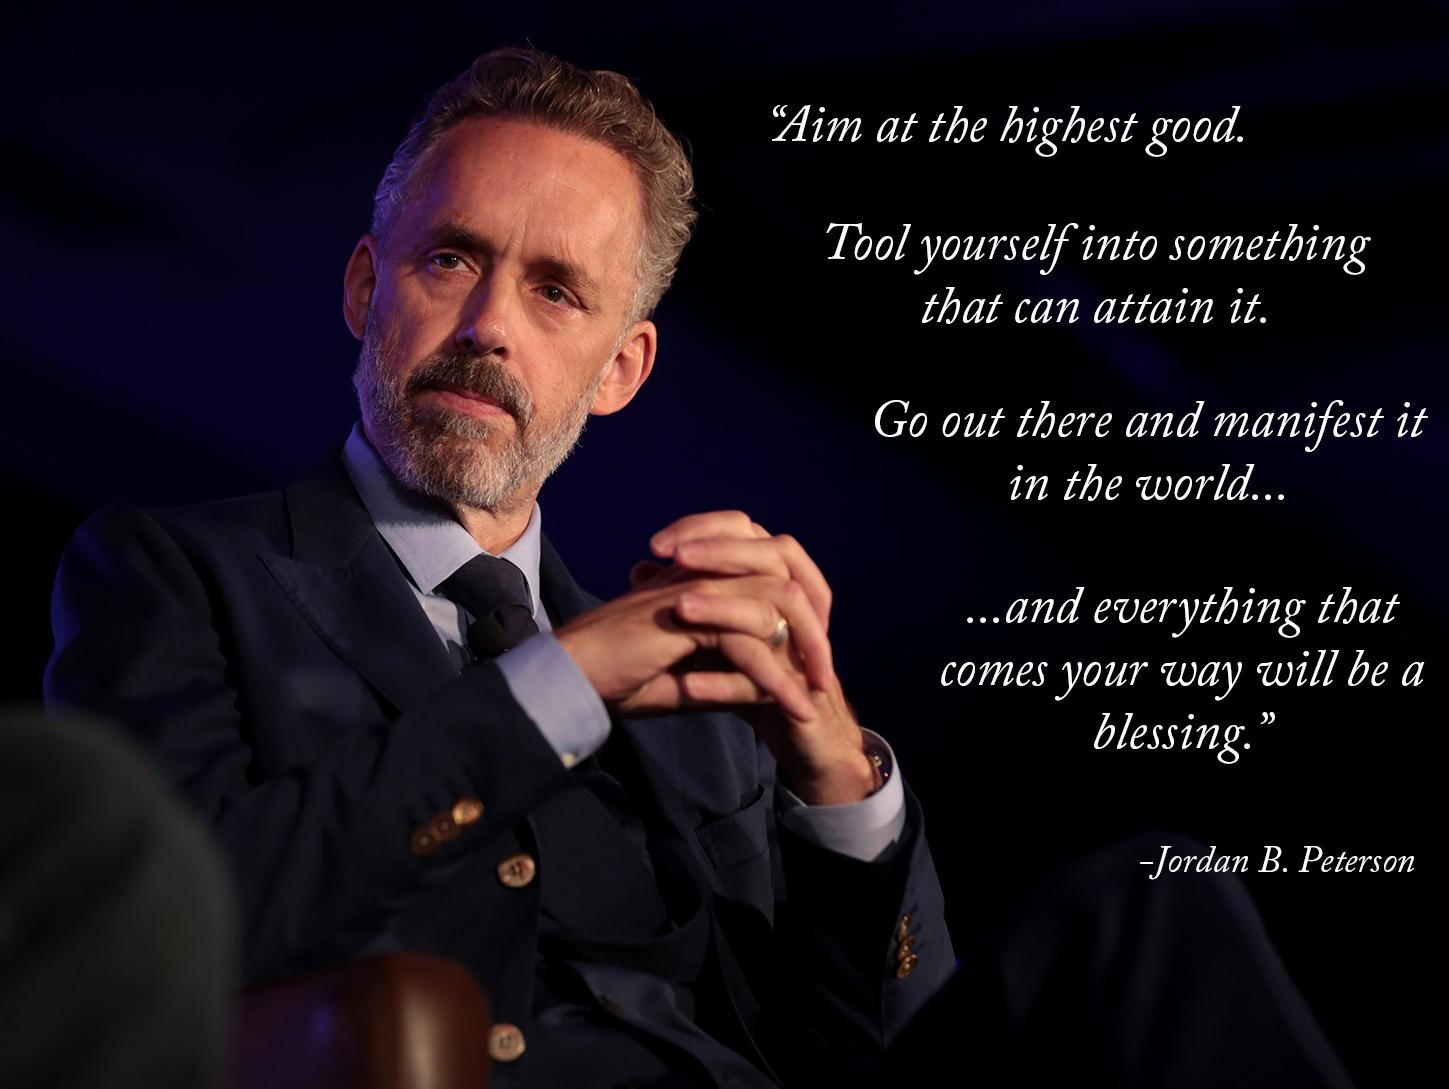 [Image] Aim At The Highest Good. Tool Yourself Into Something That Can Attain It.